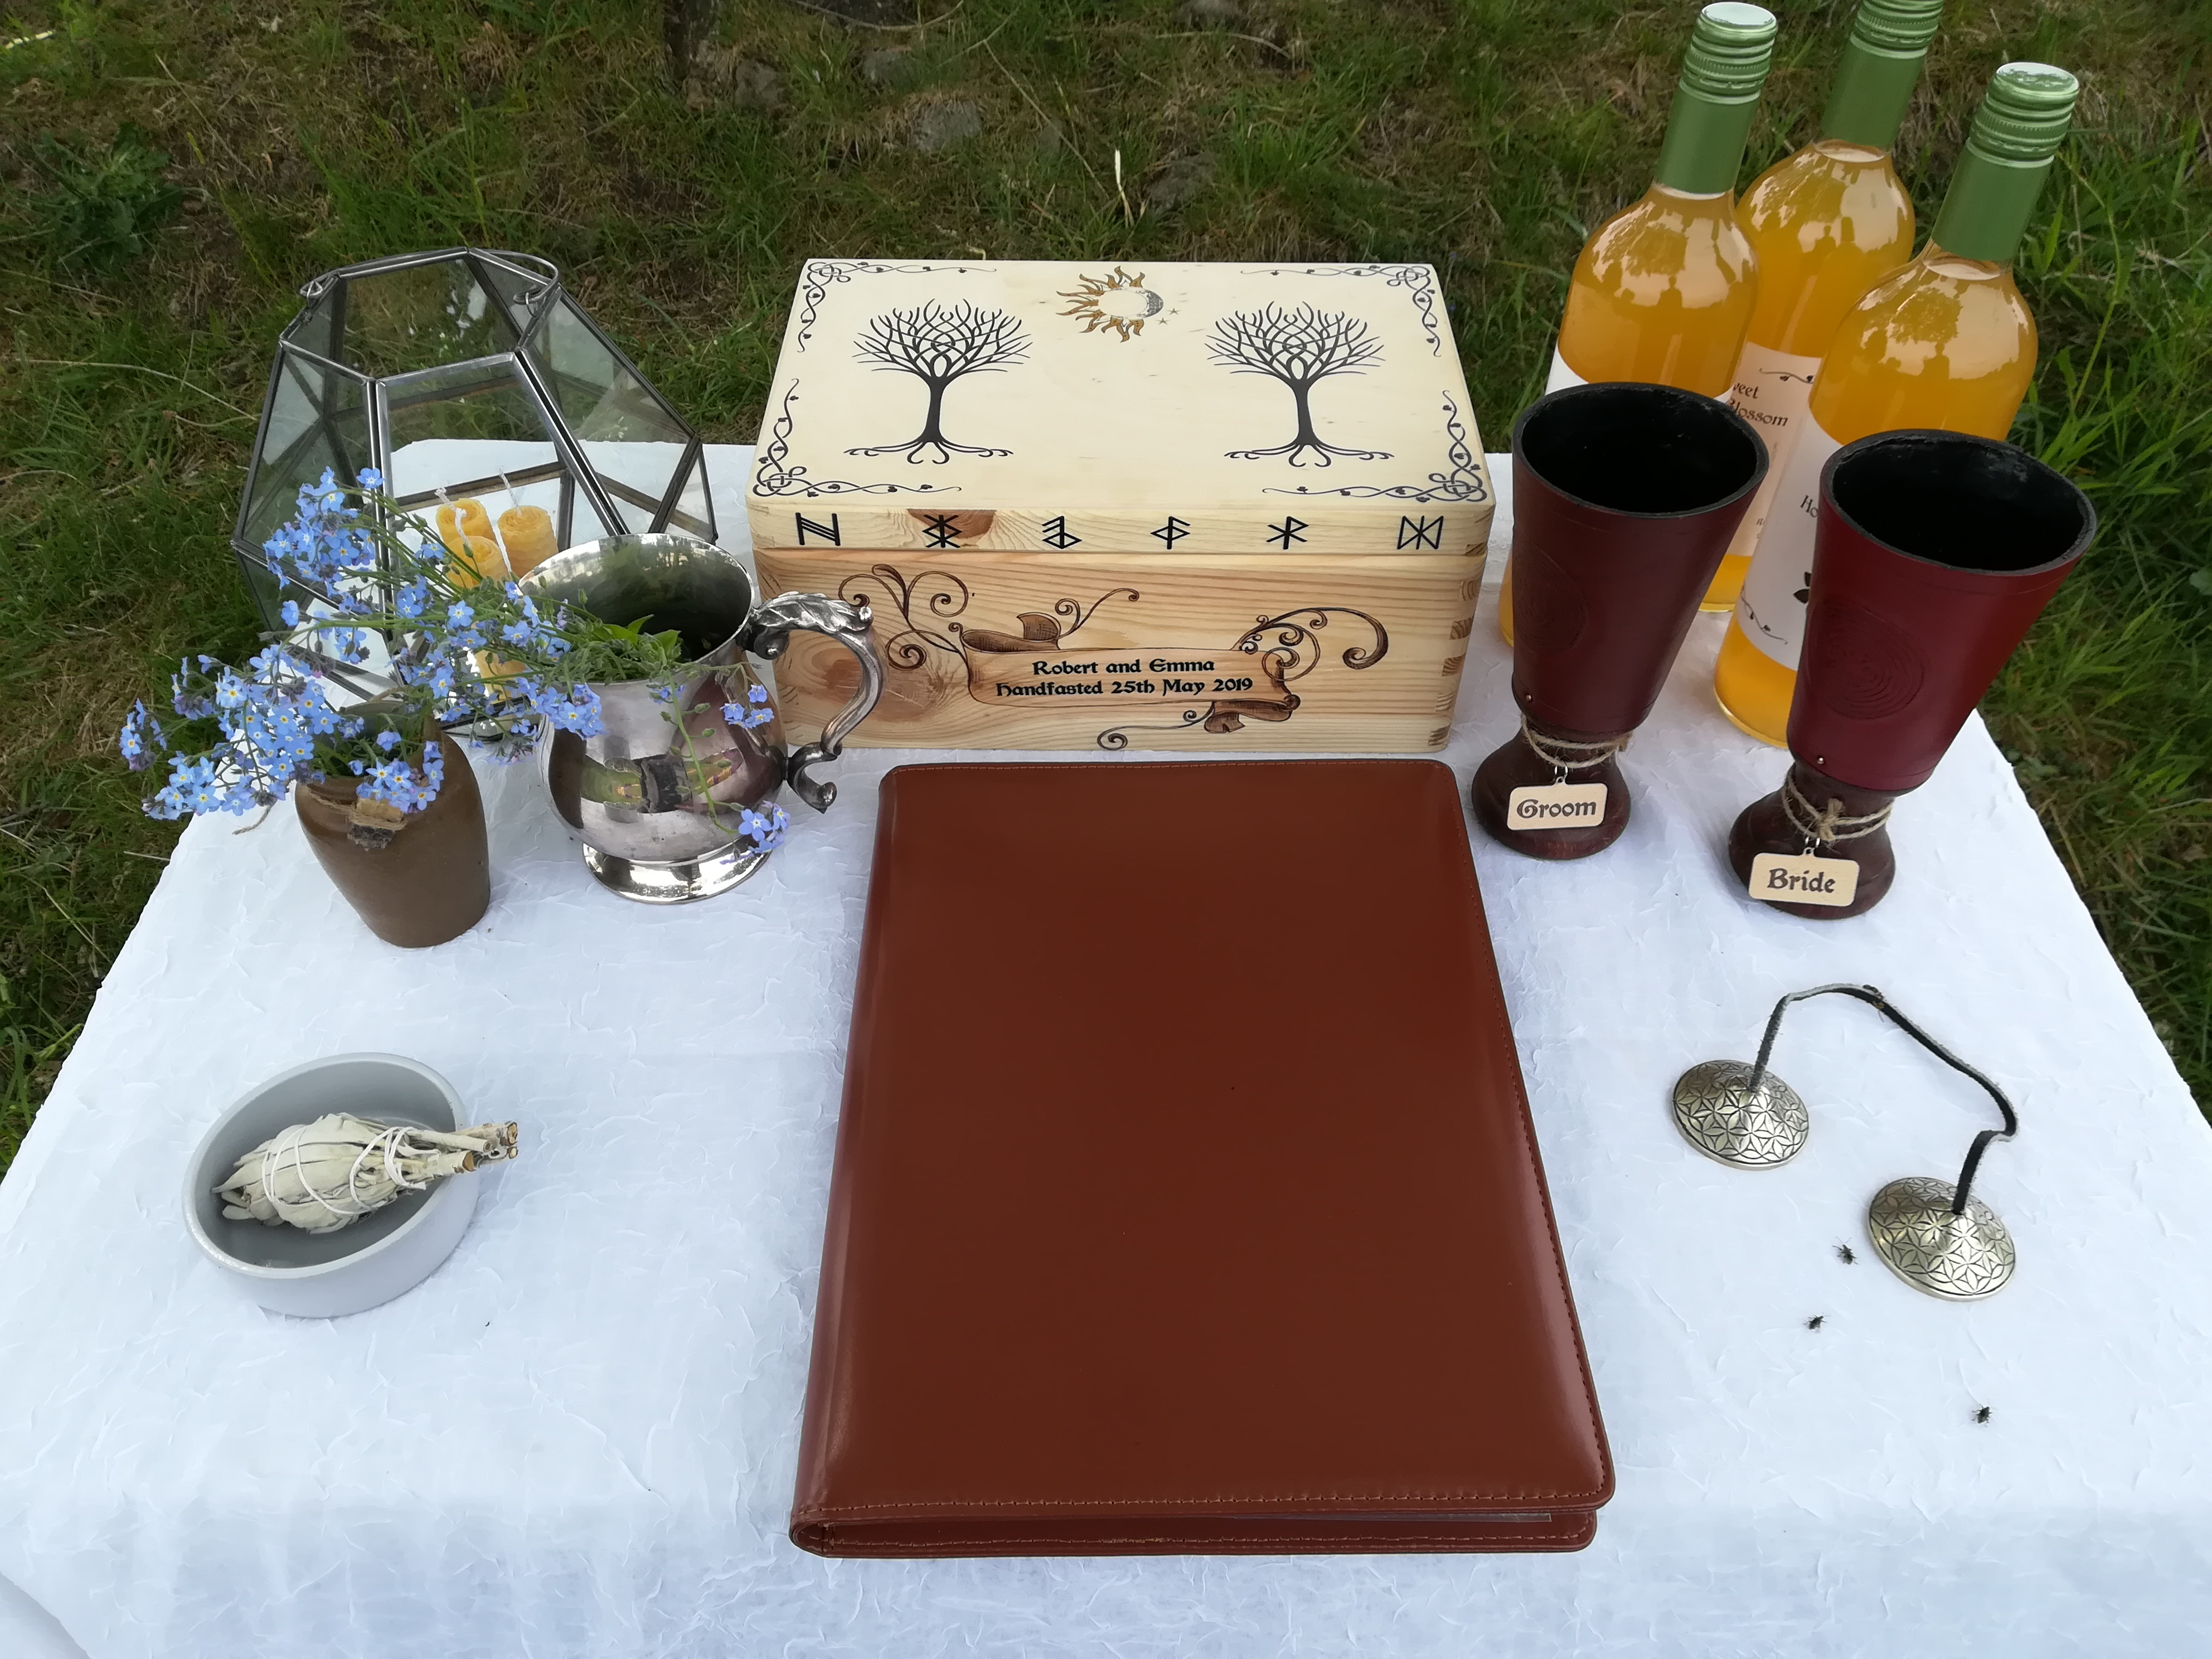 An altar set for a Viing Pagan Wedding by Celebrant Keli Tomlin including sacred bells, cups, mead, candles, forget-me-nots, sage smudge and a decorative wooden box.